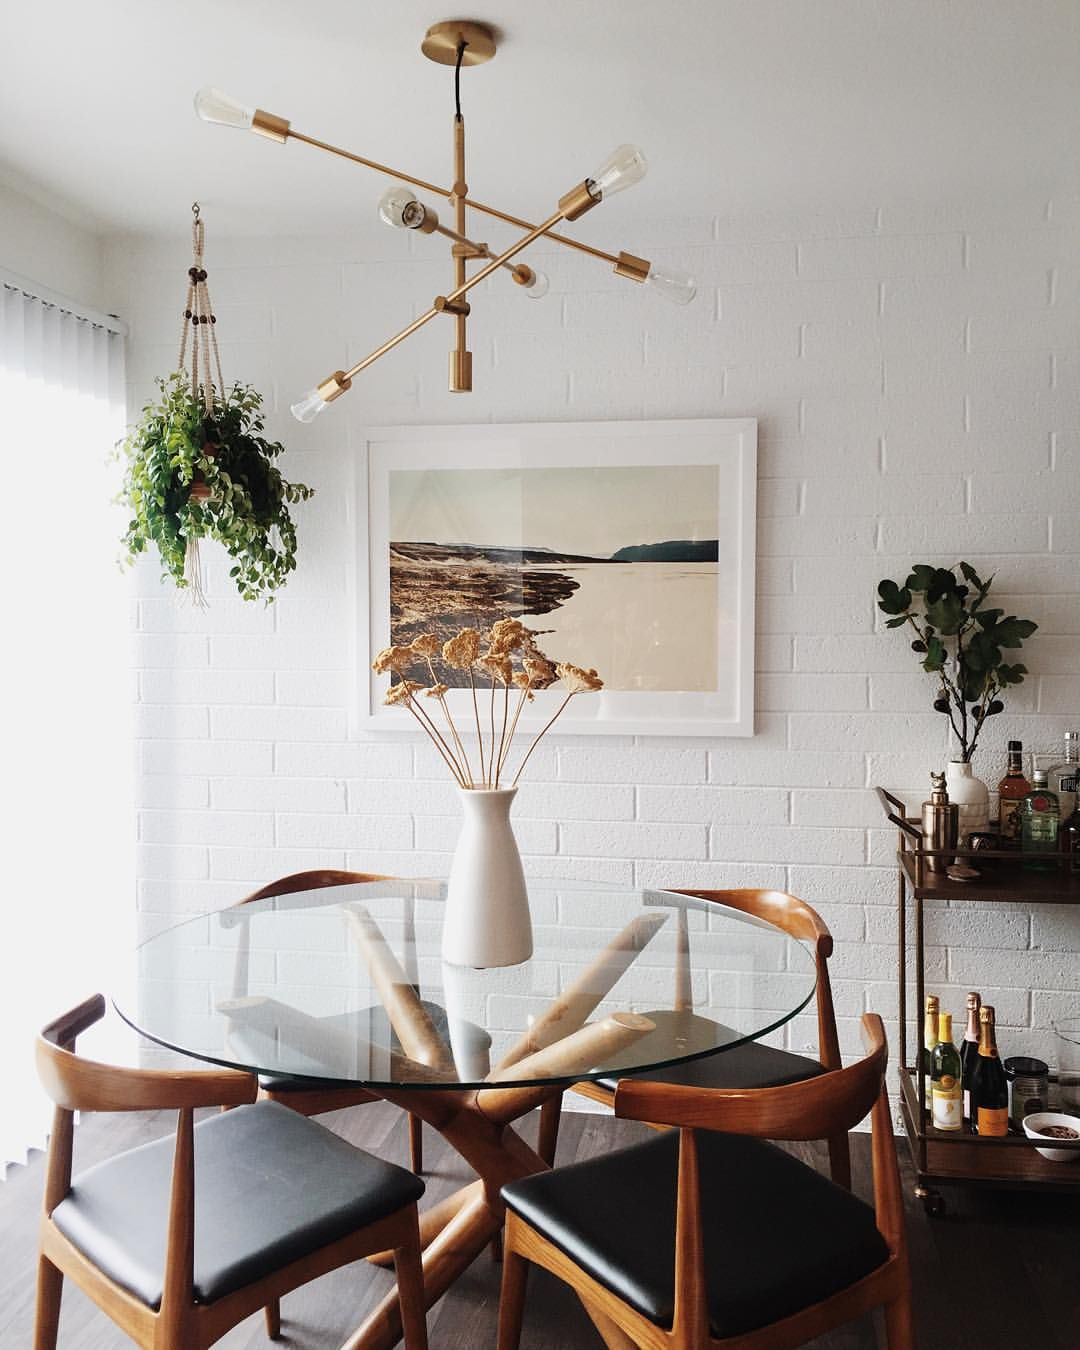 """robert & christina on Instagram: """"A little dining room progress, ft artwork from @minted. More on the blog. (Link in profile) ✨ @liketoknow.it www.liketk.it/1M6sA #liketkit #newdarlingsathome"""""""